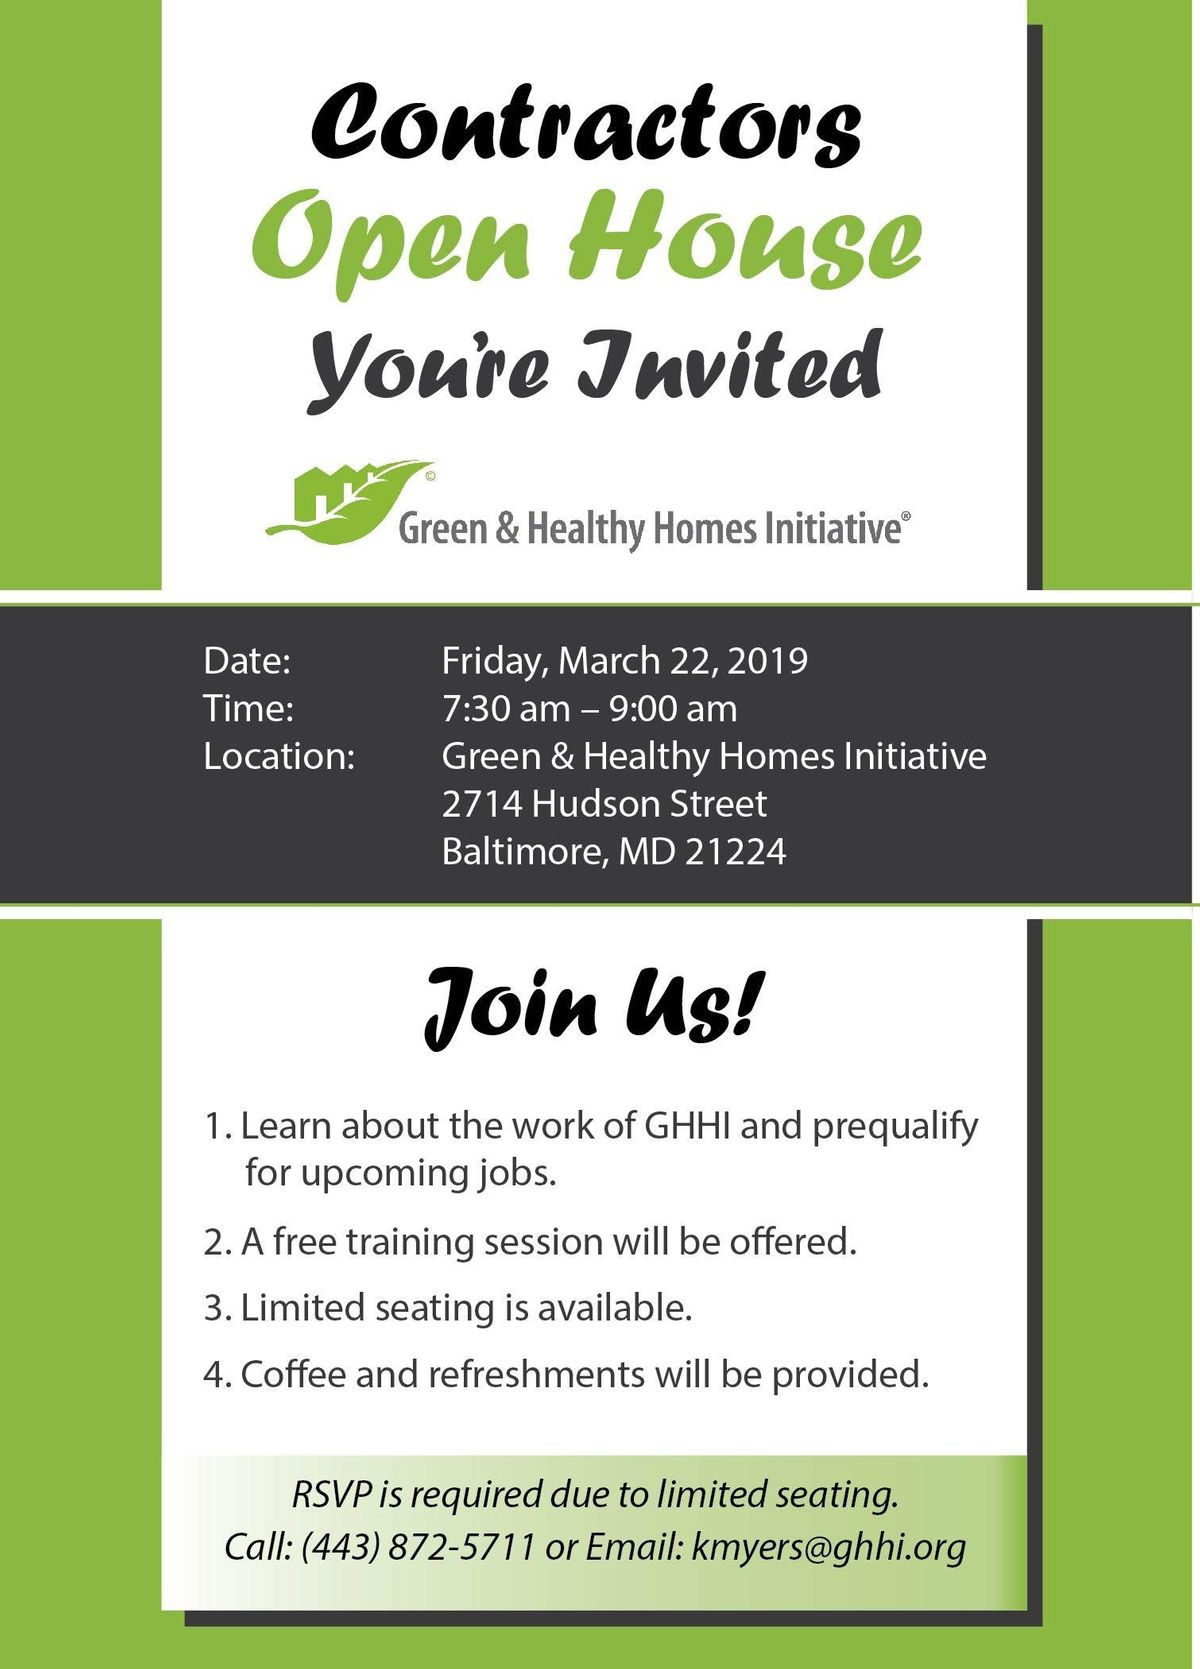 Green & Healthy Homes Contractor Open House